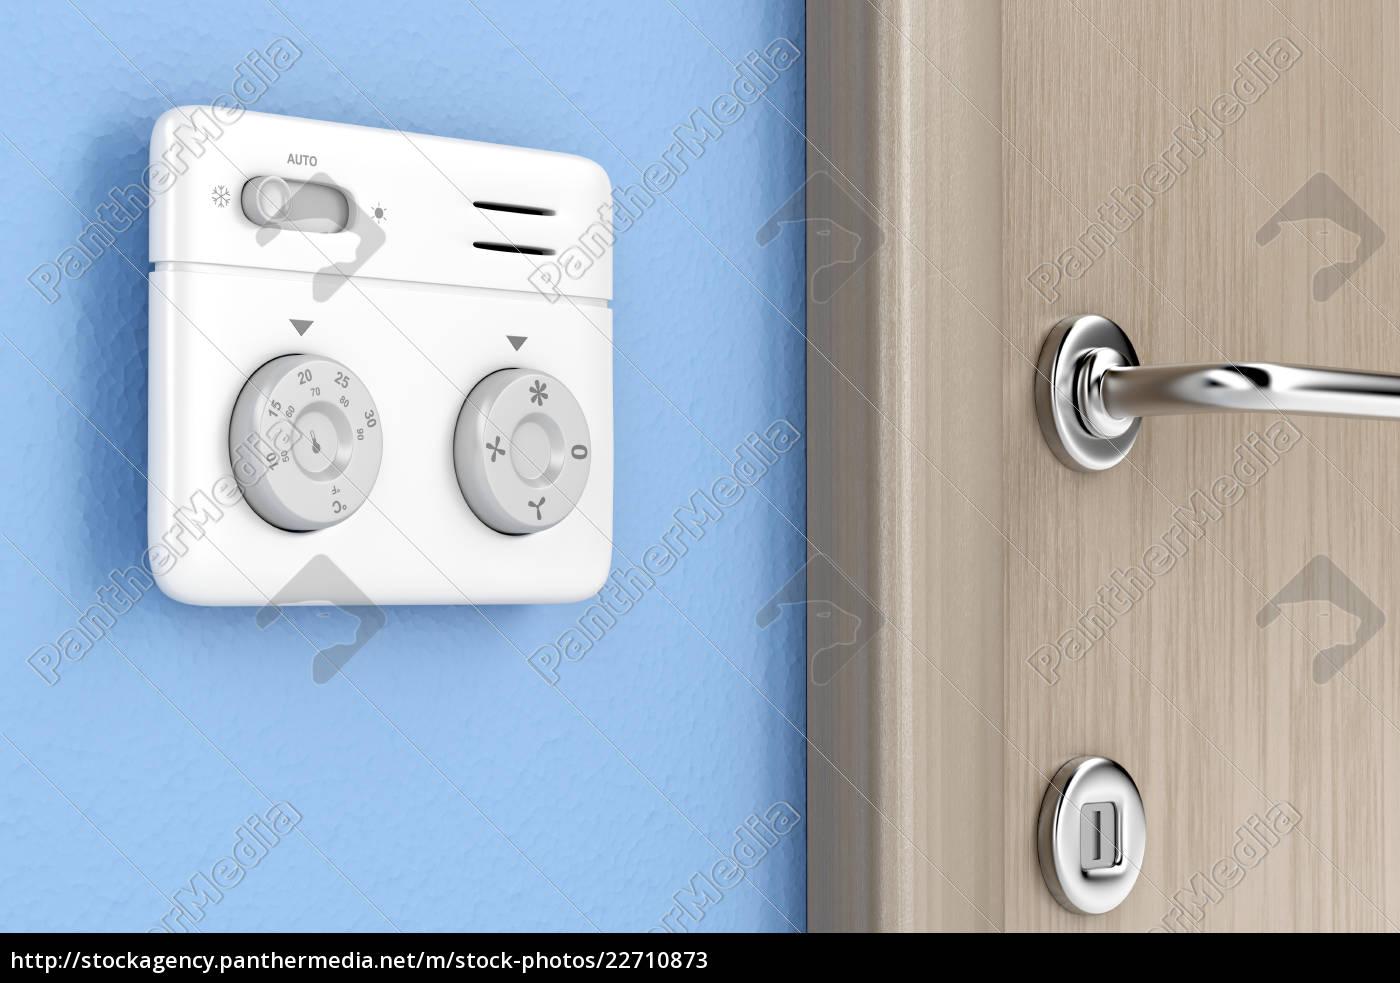 thermostat, on, the, wall - 22710873